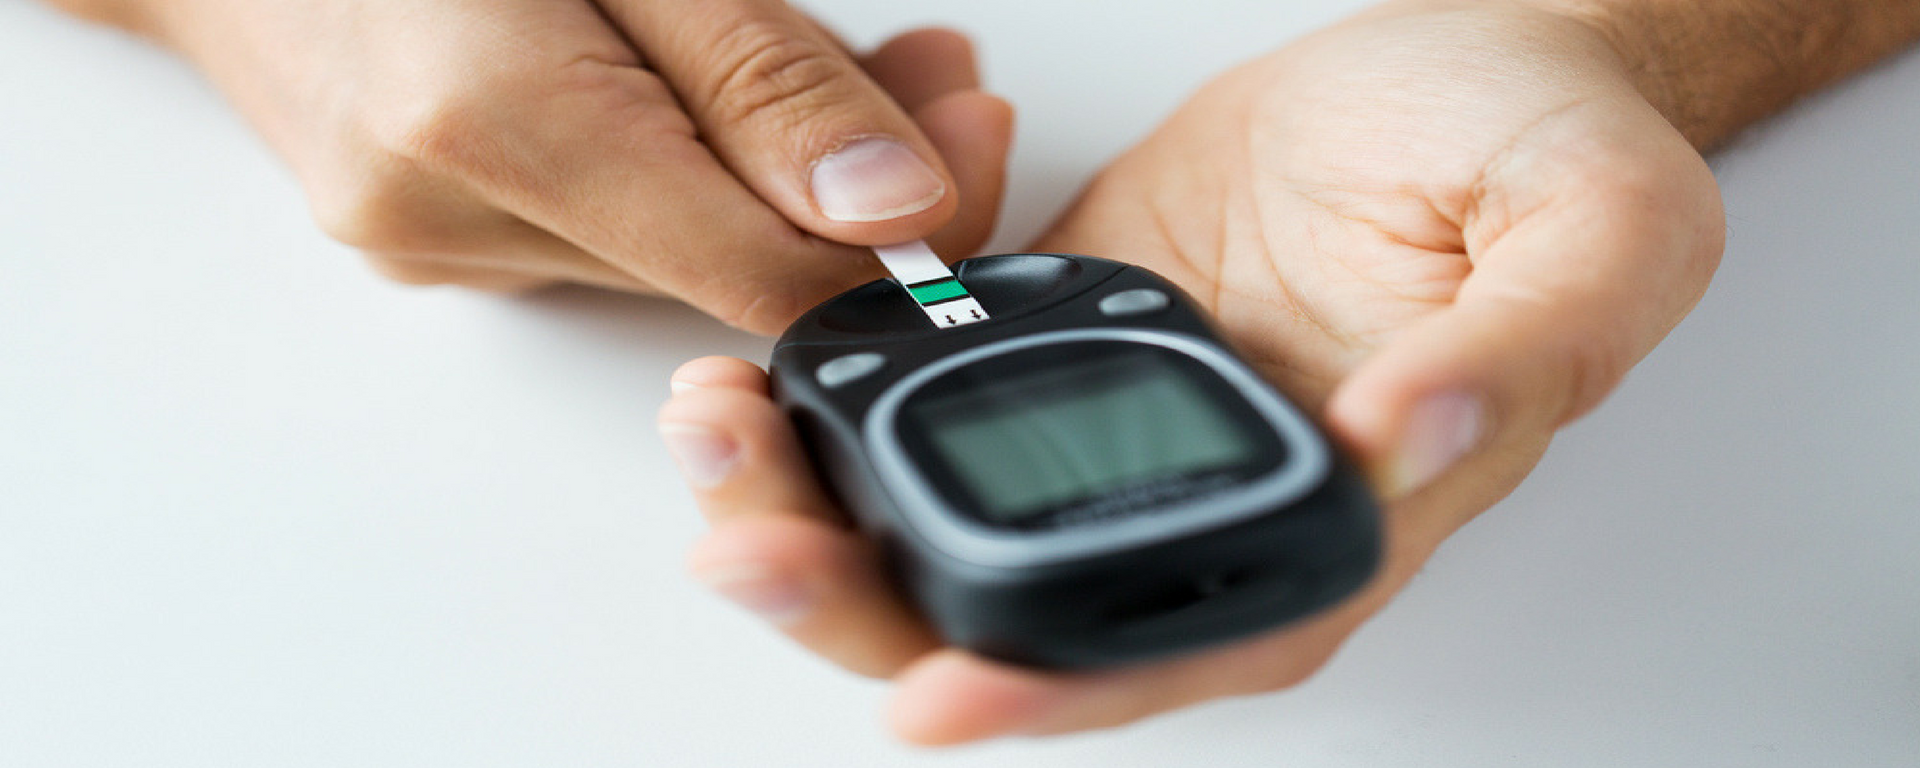 Diabetes in Singapore: A Perspective in Numbers